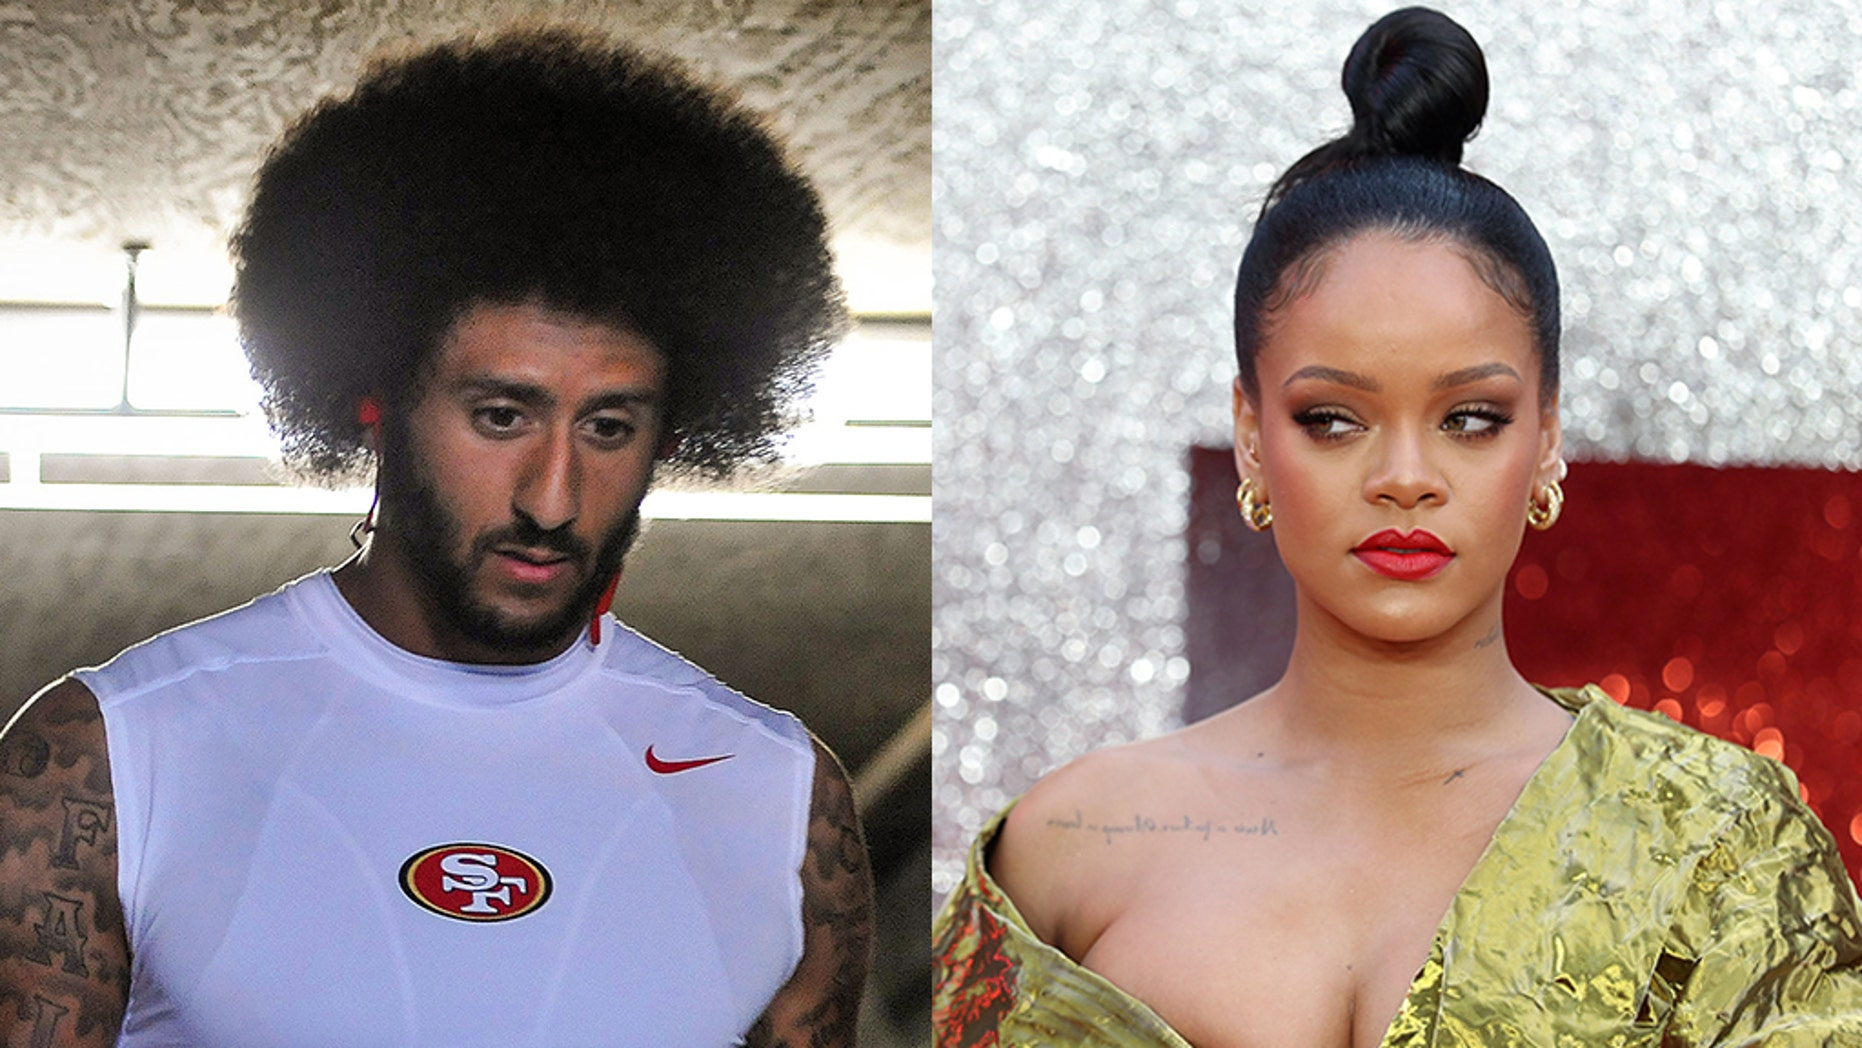 Rihanna, in support of Colin Kaepernick, declines Super Bowl performance